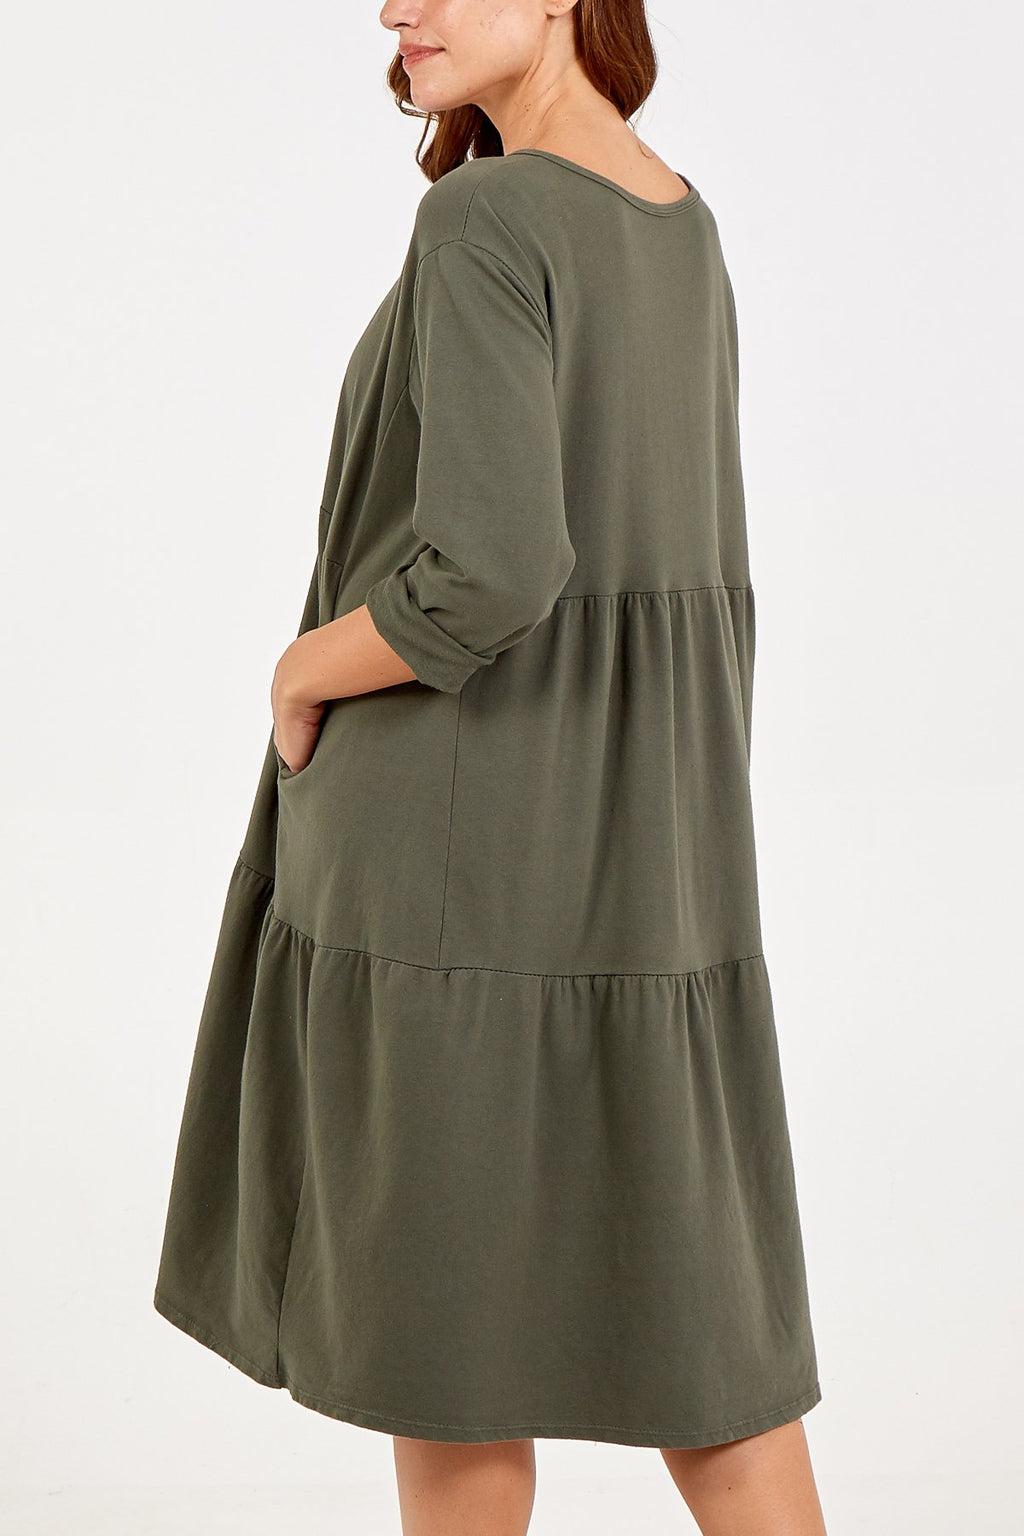 Khaki Tiered Smock Dress with Pockets